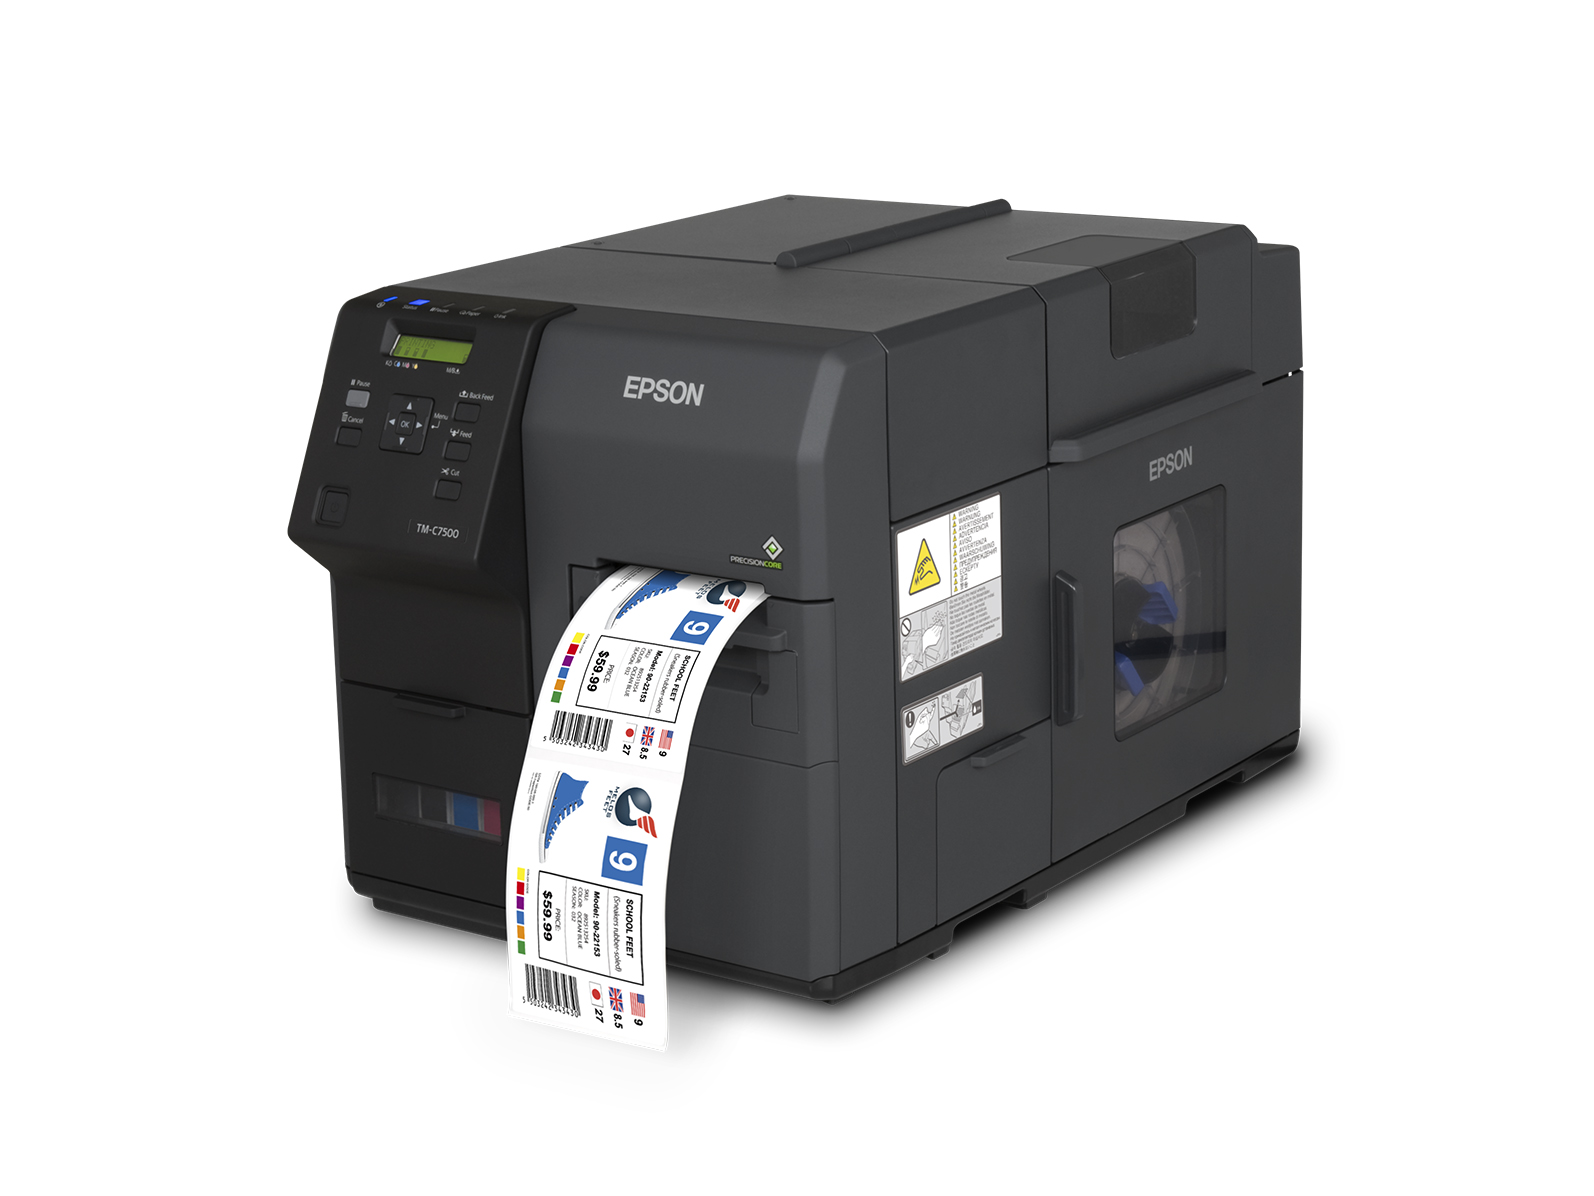 What's the Difference Between the Epson TM-C7500 and the Epson TM-C7500G?